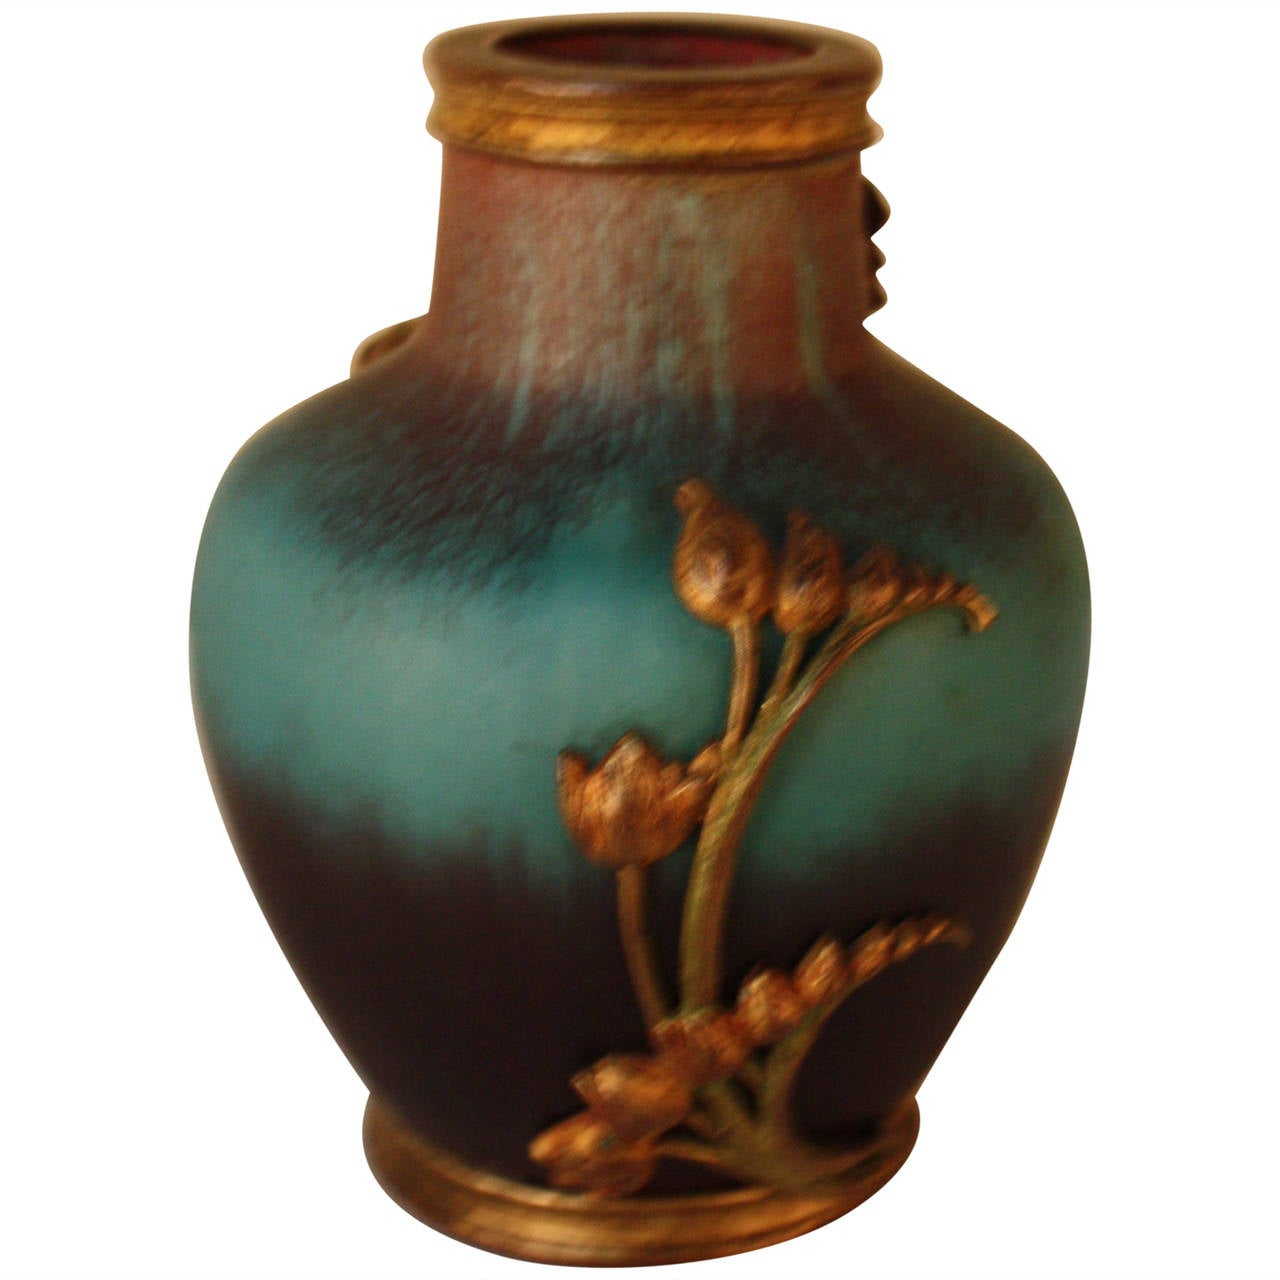 French Art Nouveau Pottery With Bronze Overlay At 1stdibs